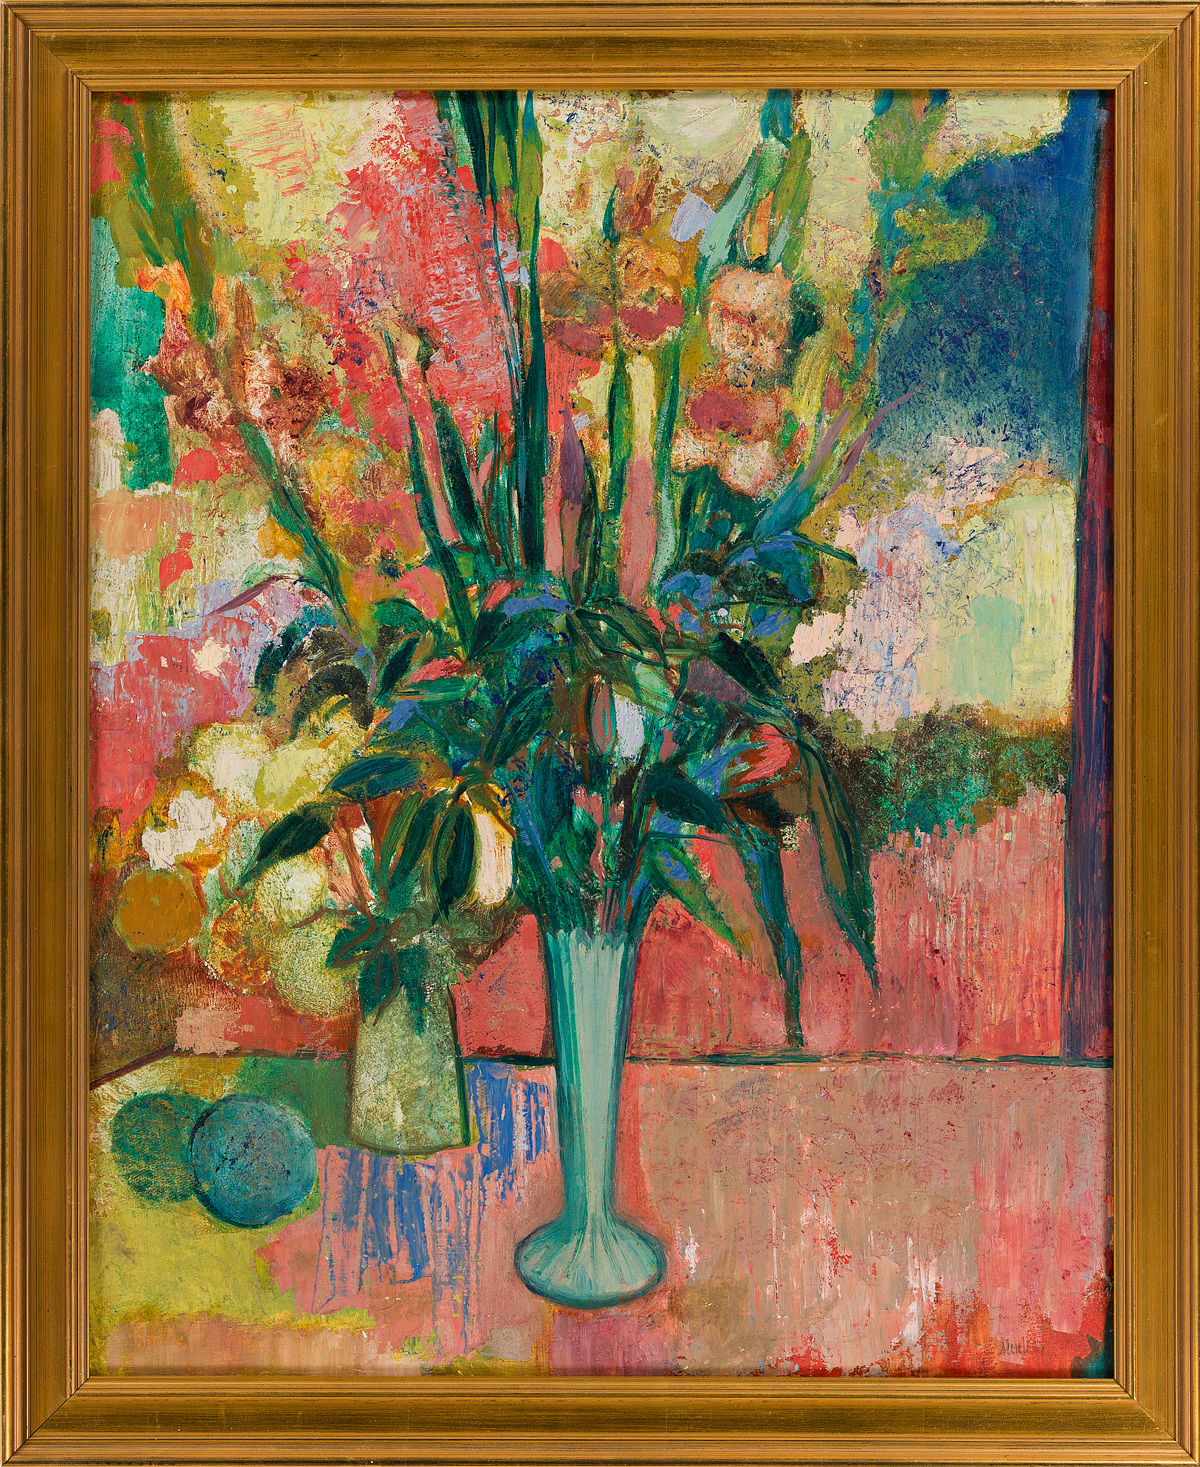 SIGMUND-JOSEPH-MENKES-Still-Life-with-Flowers-in-a-Vase